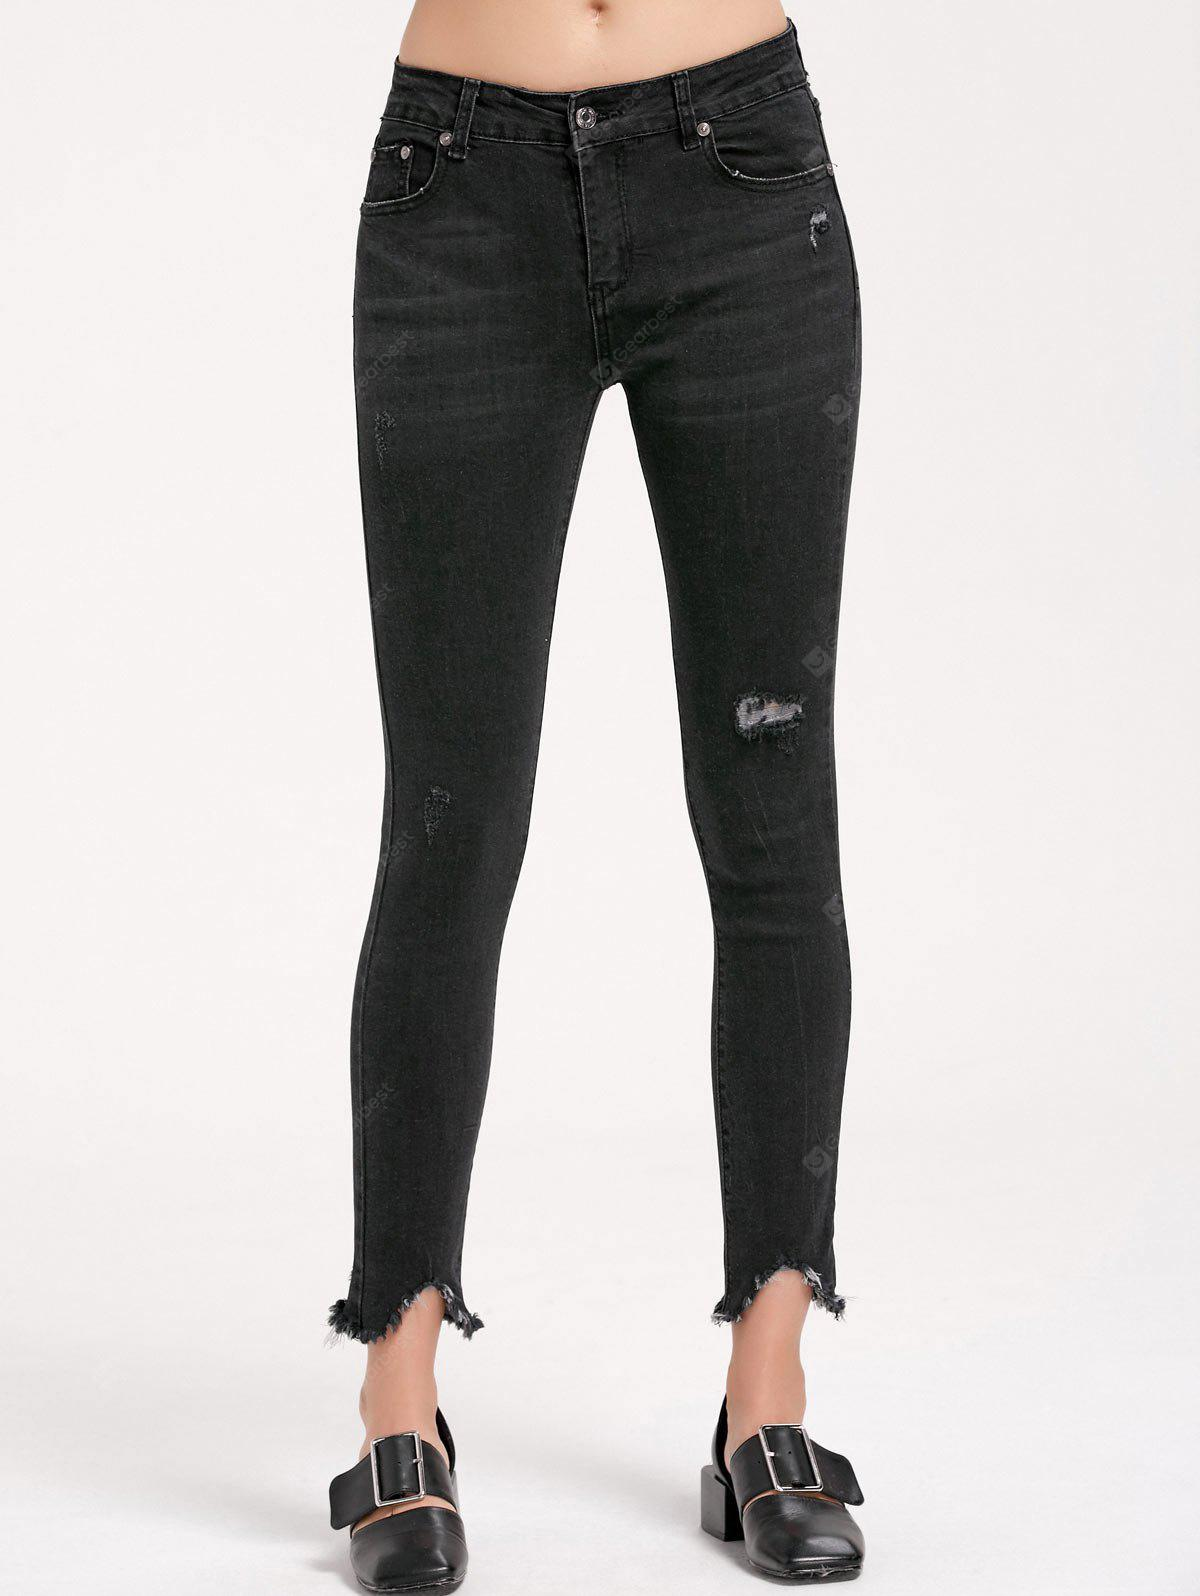 BLACK M Ripped Frayed Skinny Pencil Jeans